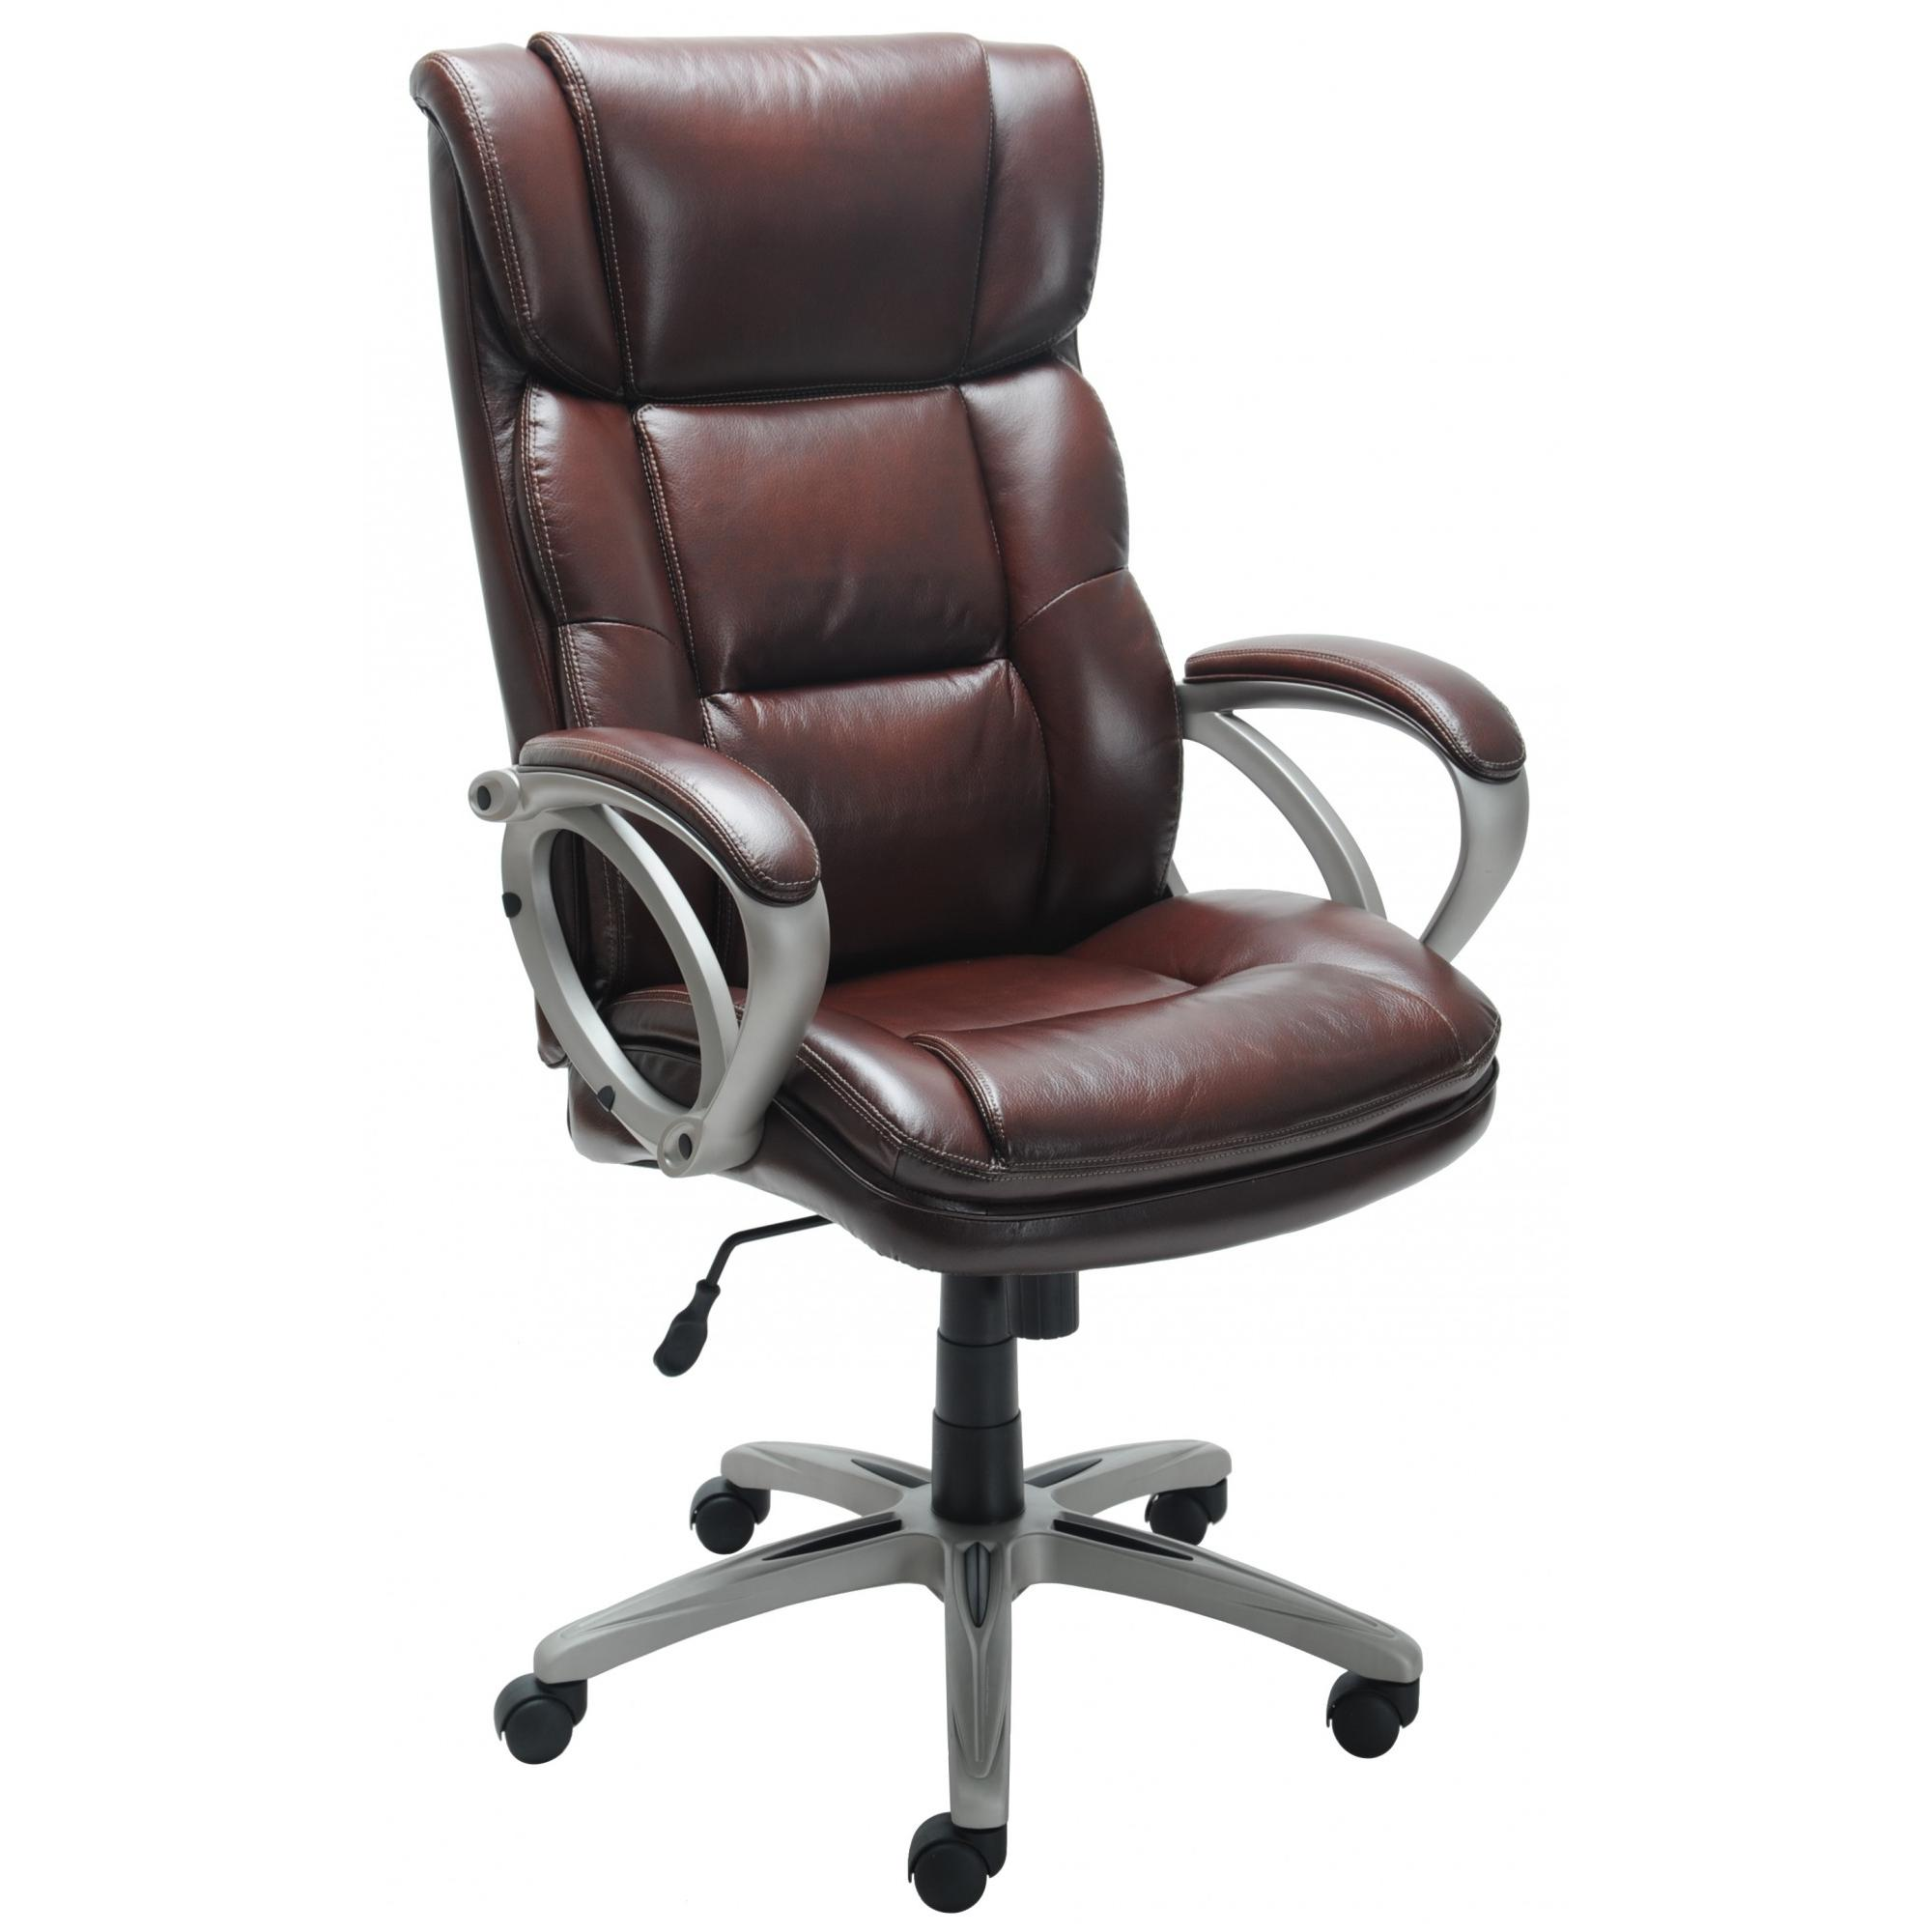 Broyhill Bonded Leather Executive Chair  Walmartcom